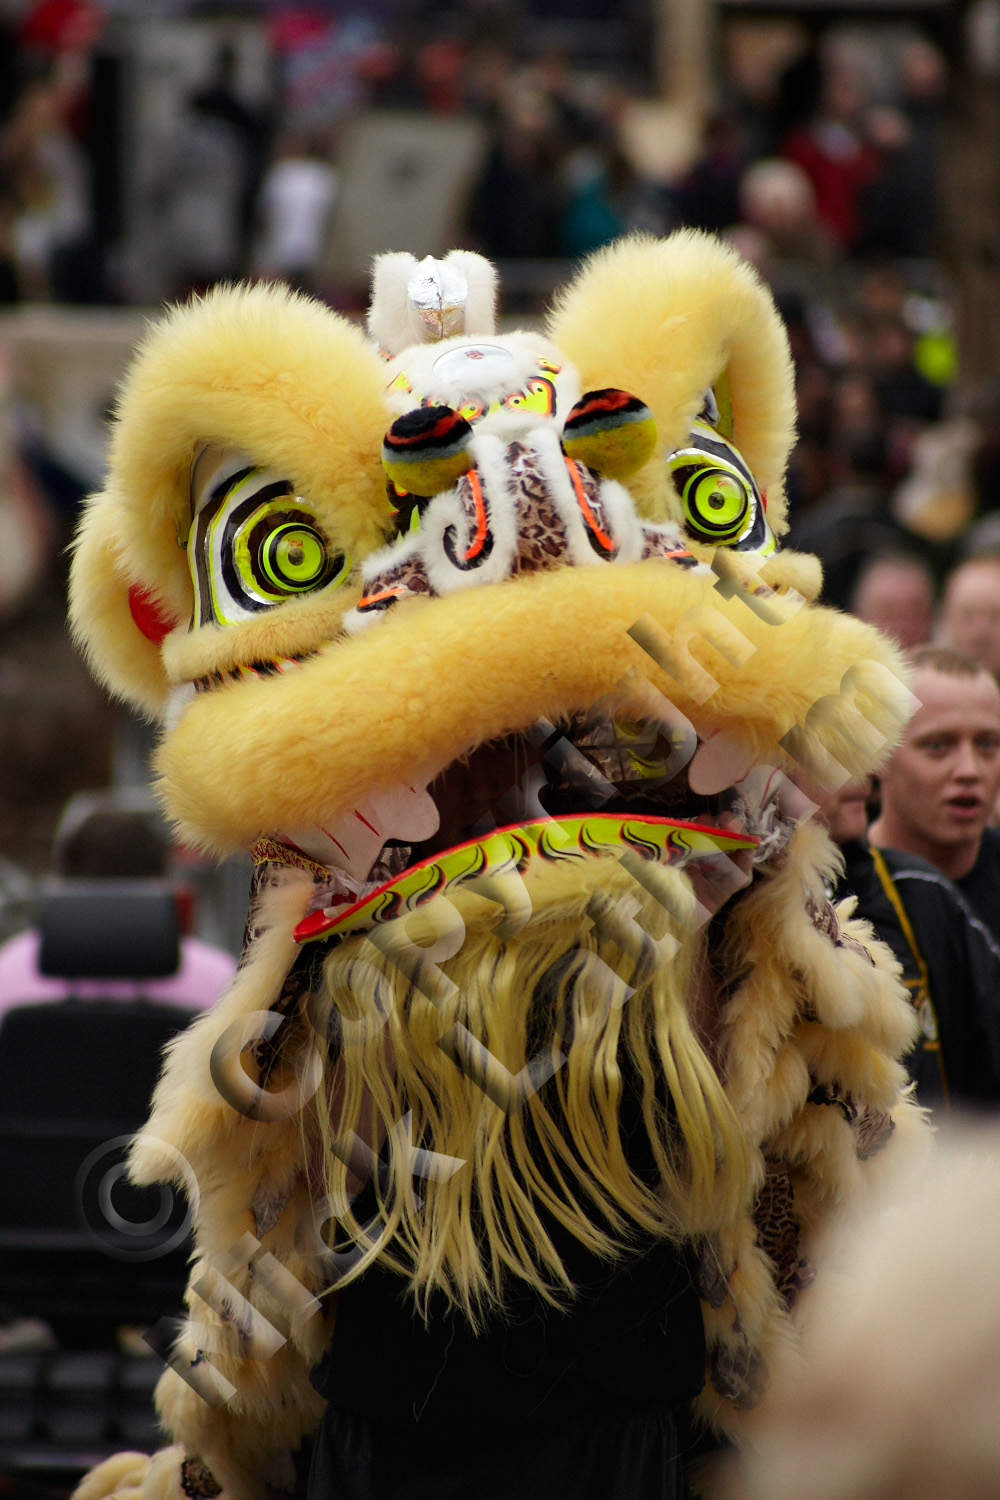 Chinese lion dance - the lion approaches